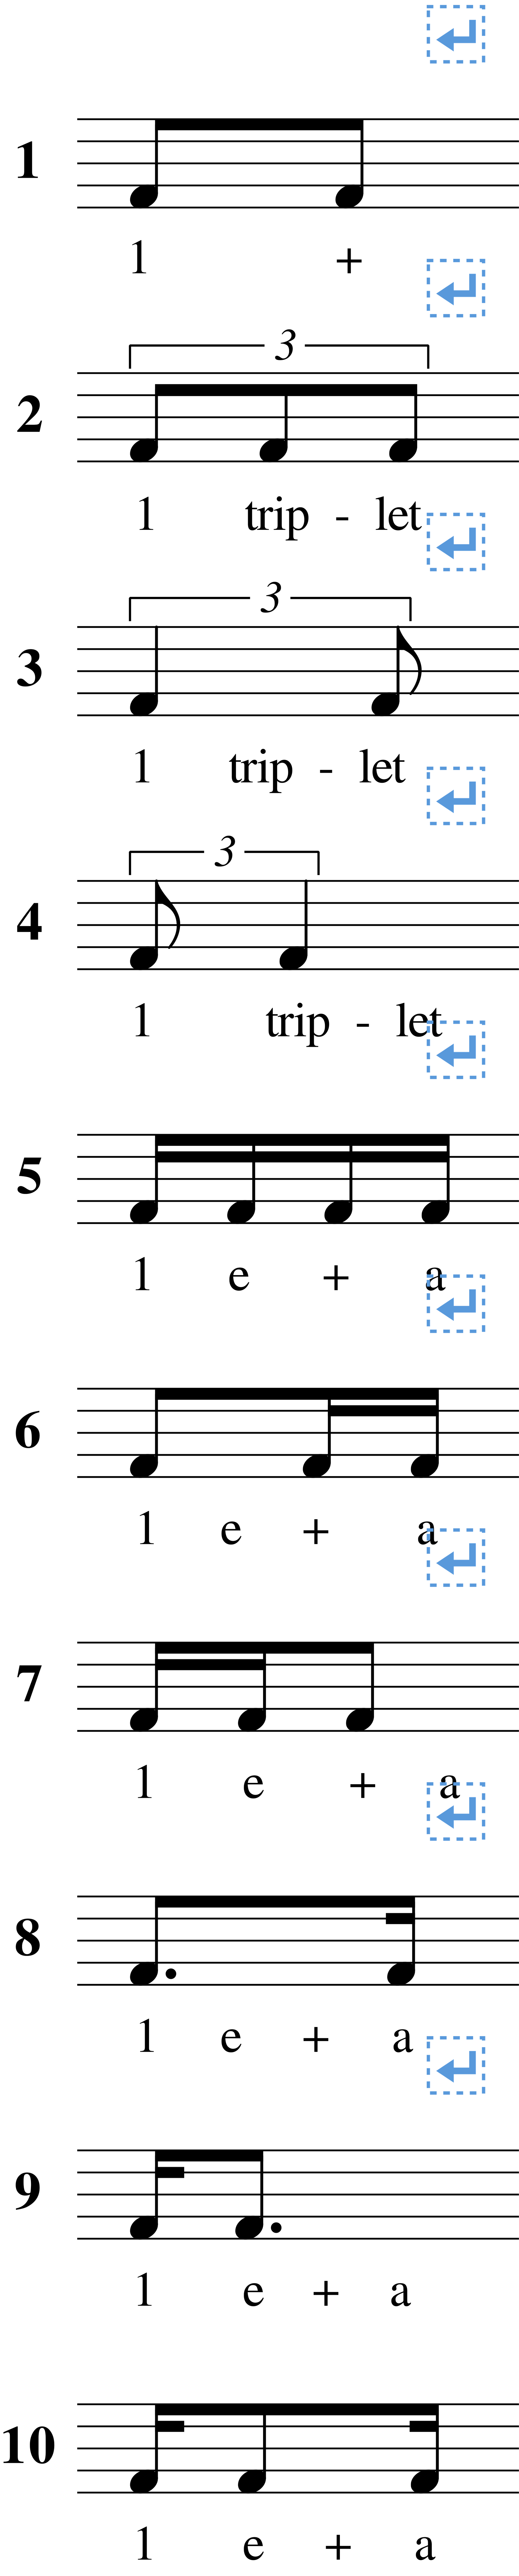 An Organized Approach To Teaching Rhythm Part 1 Of 2